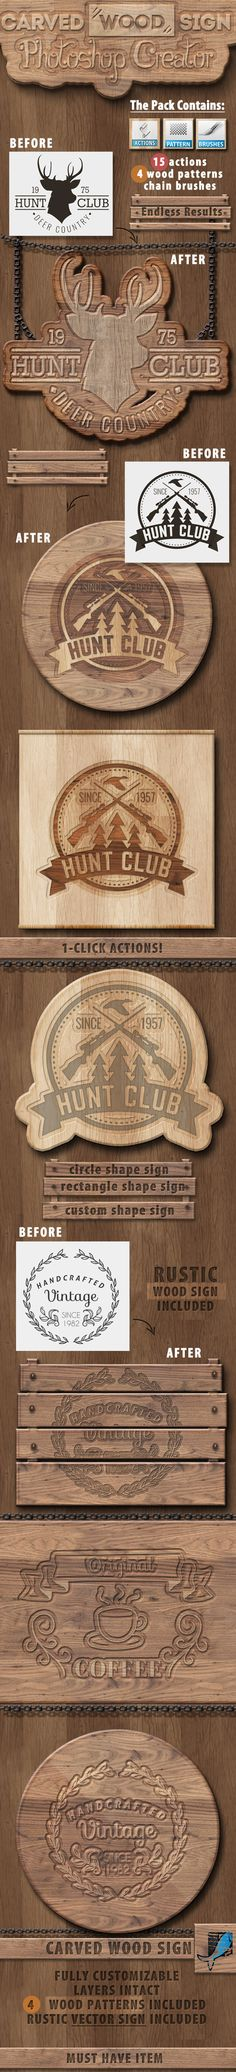 Carved Wood Sign Photoshop Creator - Utilities Actions